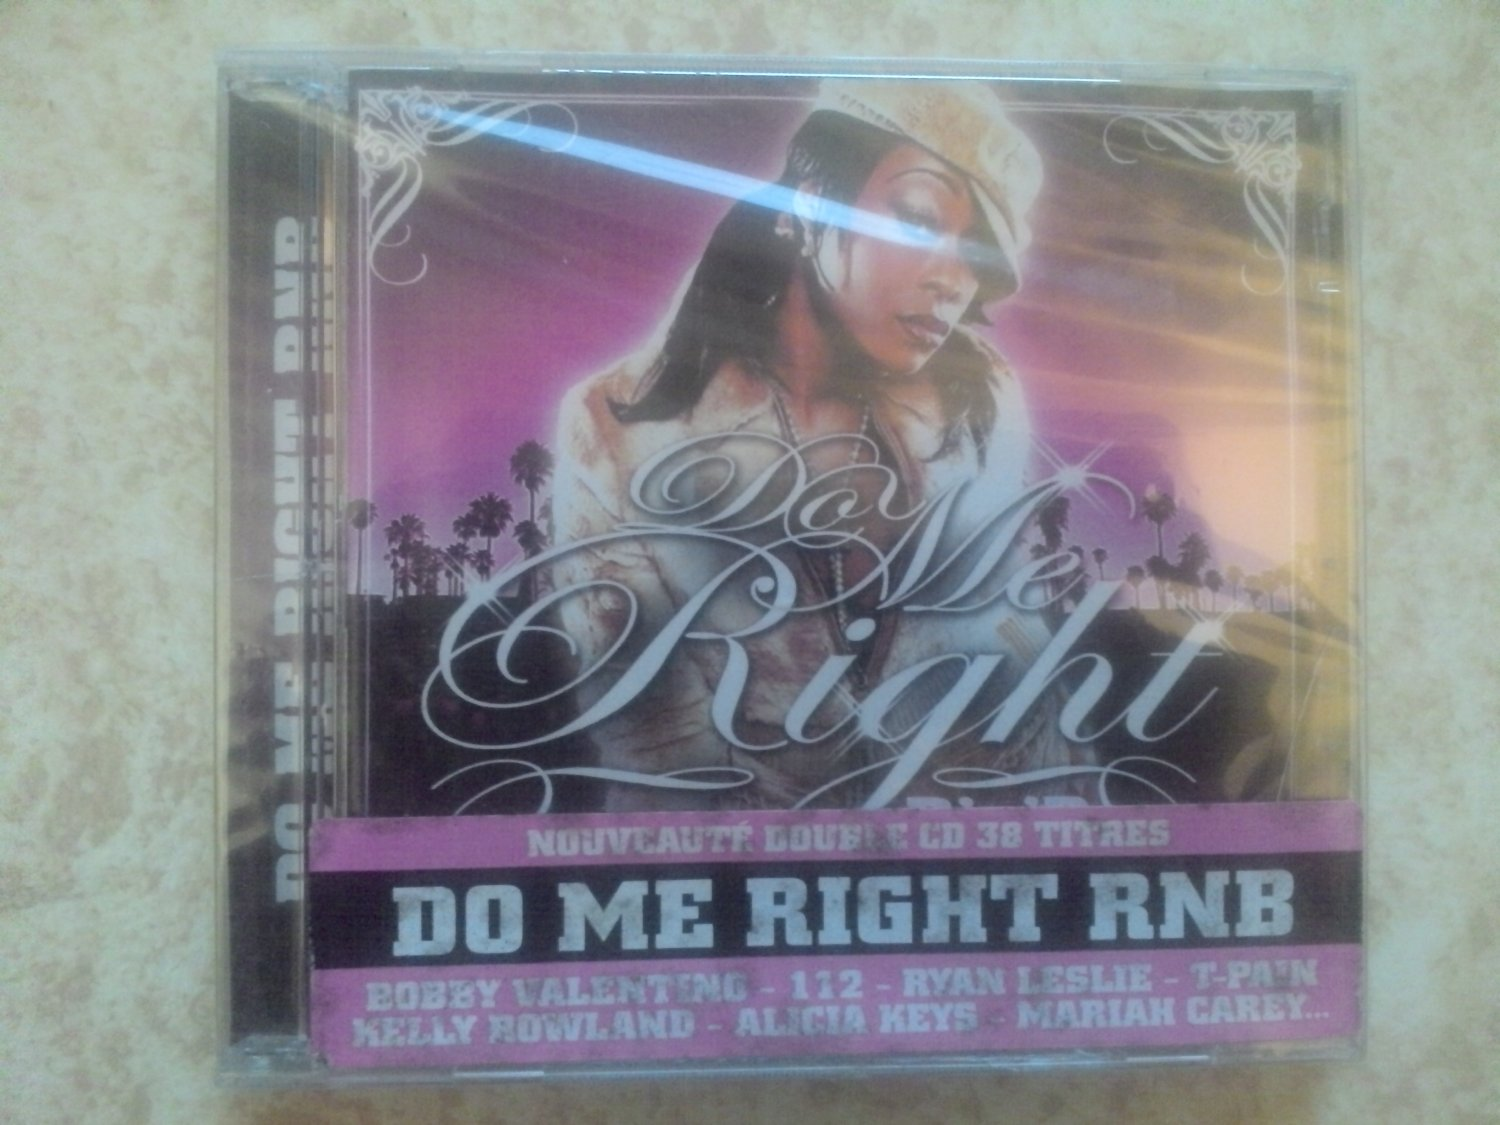 Do me right Rnb - 2xcd